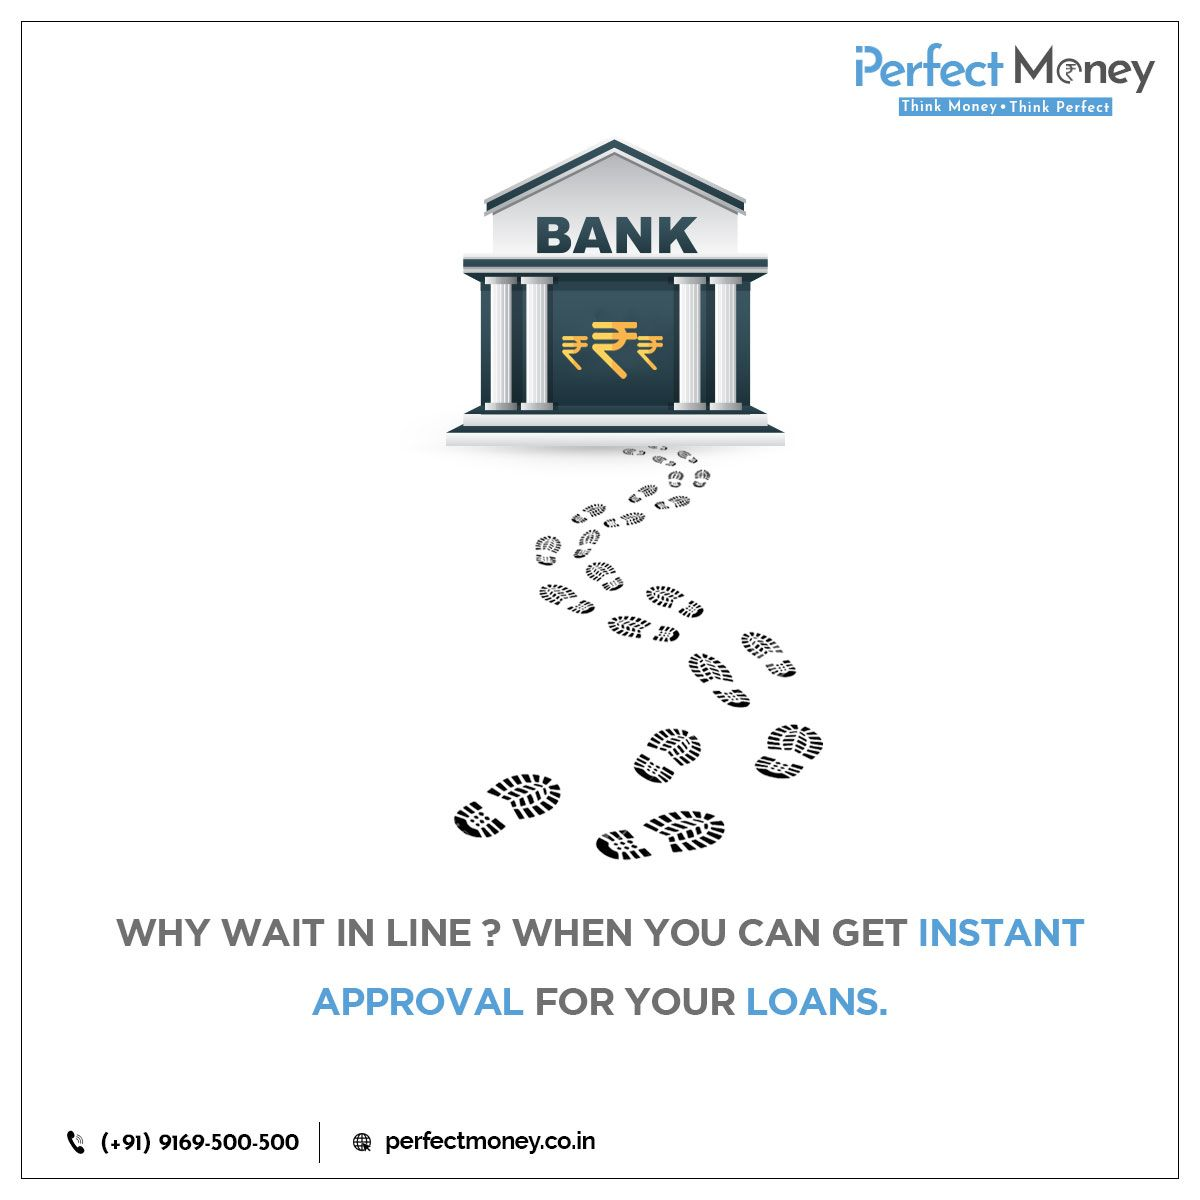 Personal Loan Personal Loans Perfect Money Waiting In Line